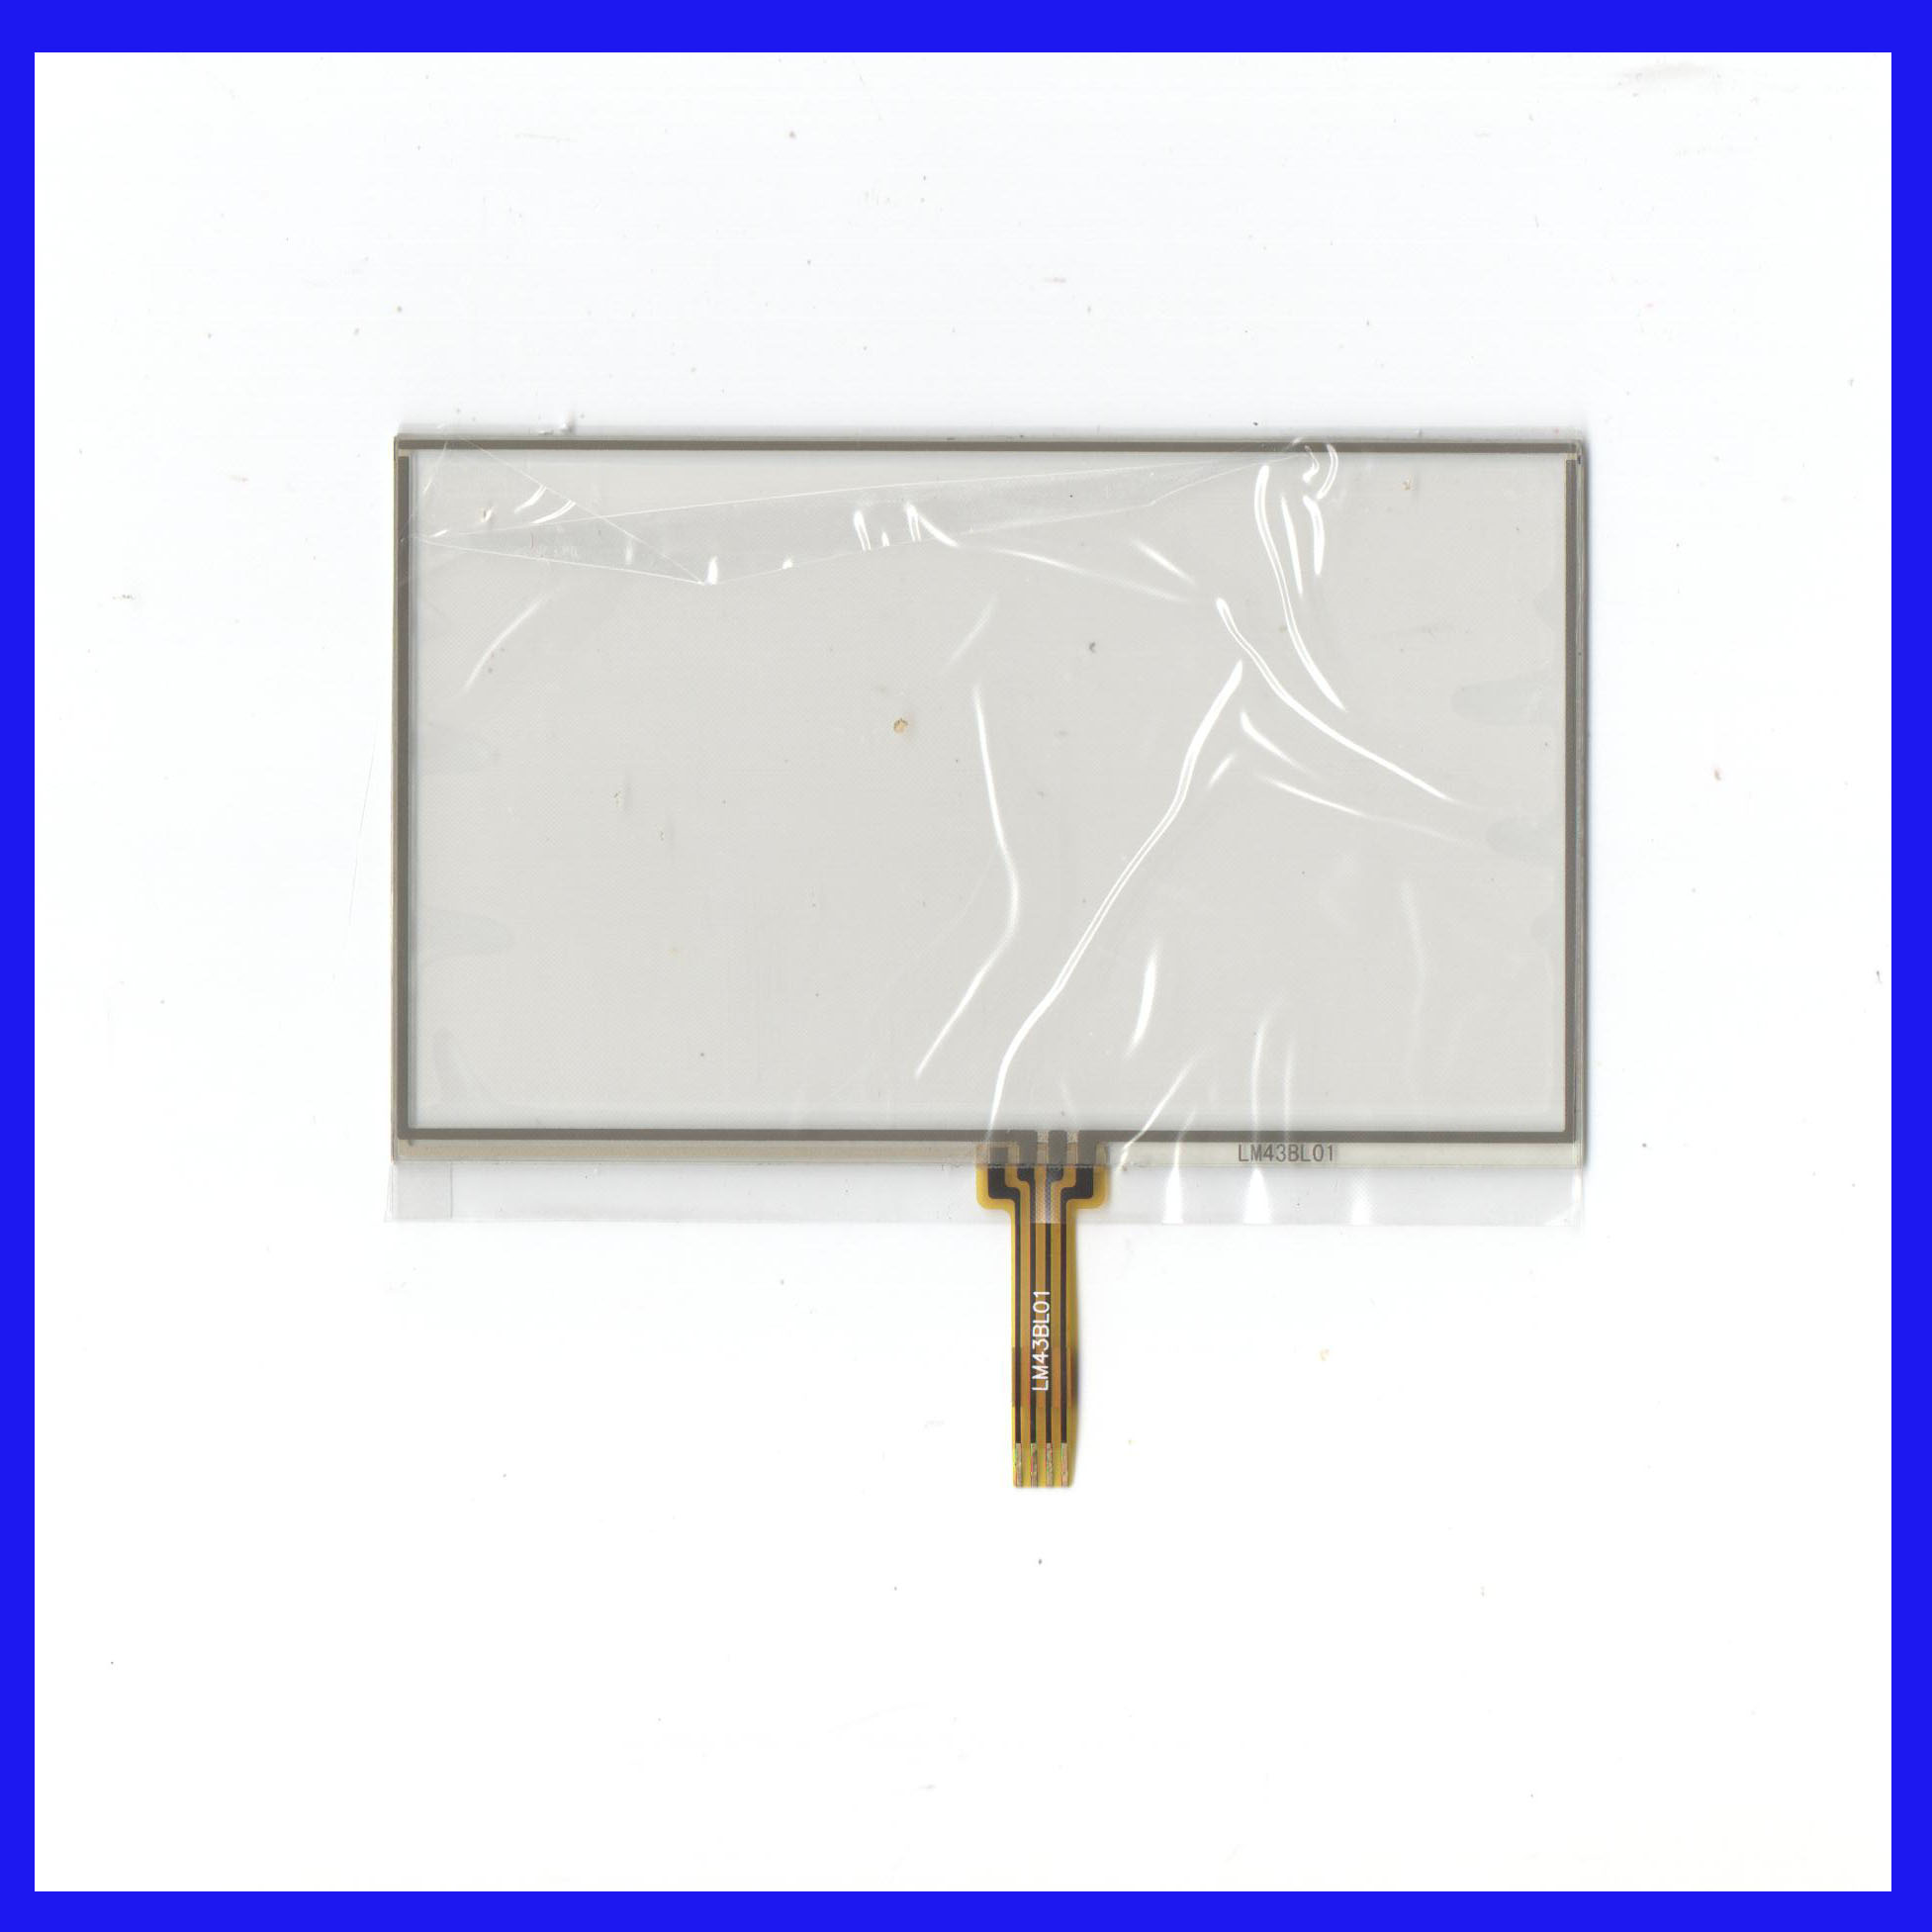 For HA EXEQ MP-1020 Spider Touch Screen General Touch Screen  New GPS't A Mp5 MP4 4 Wire Resistive Touch Screens